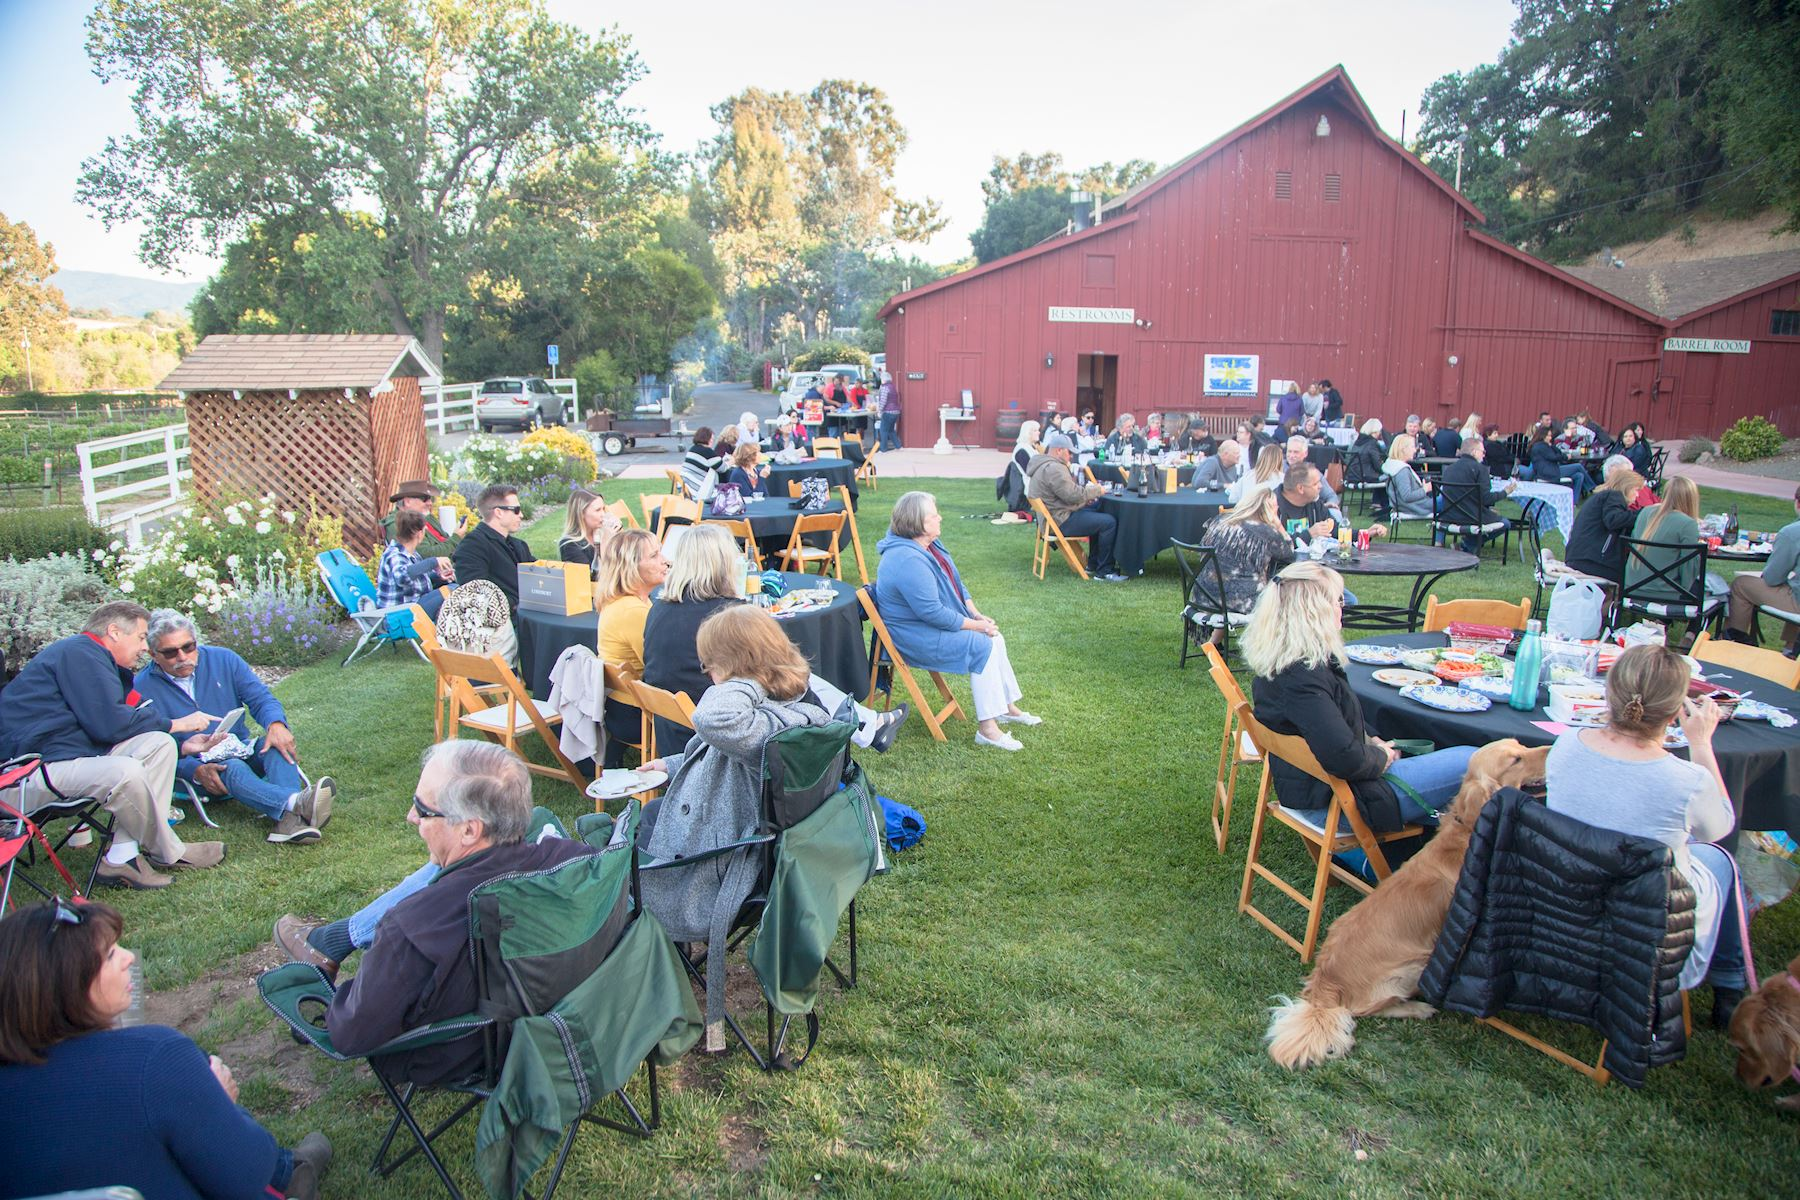 The crowd at the Lincourt Summer Concert Series